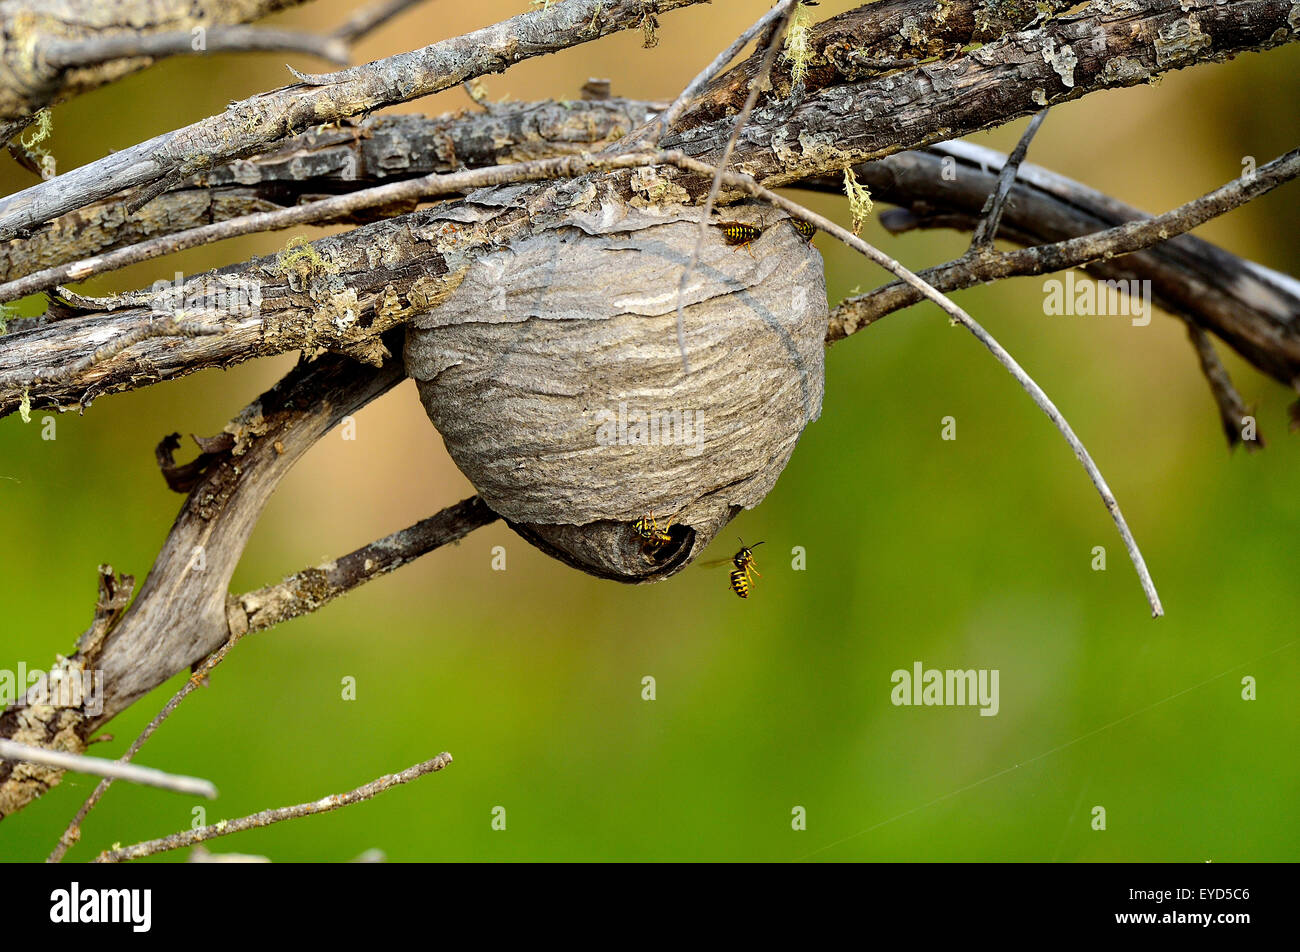 Yellow jacket wasps 'Vespula maculifrons',  building a nest - Stock Image